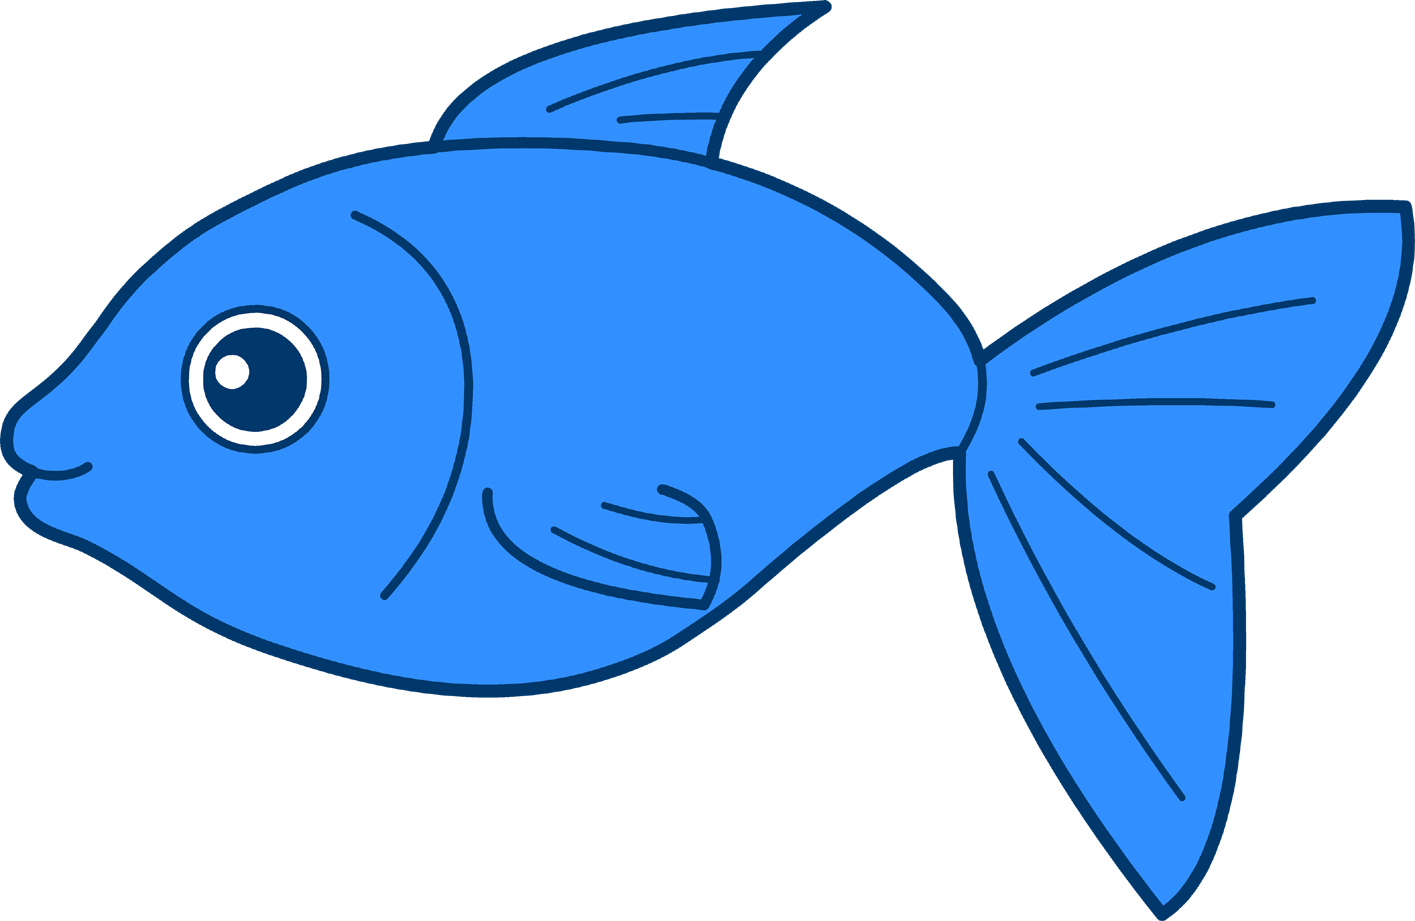 Dr sue one fish clipart vector freeuse download Fish Clipart For Kids at GetDrawings.com | Free for personal use ... vector freeuse download